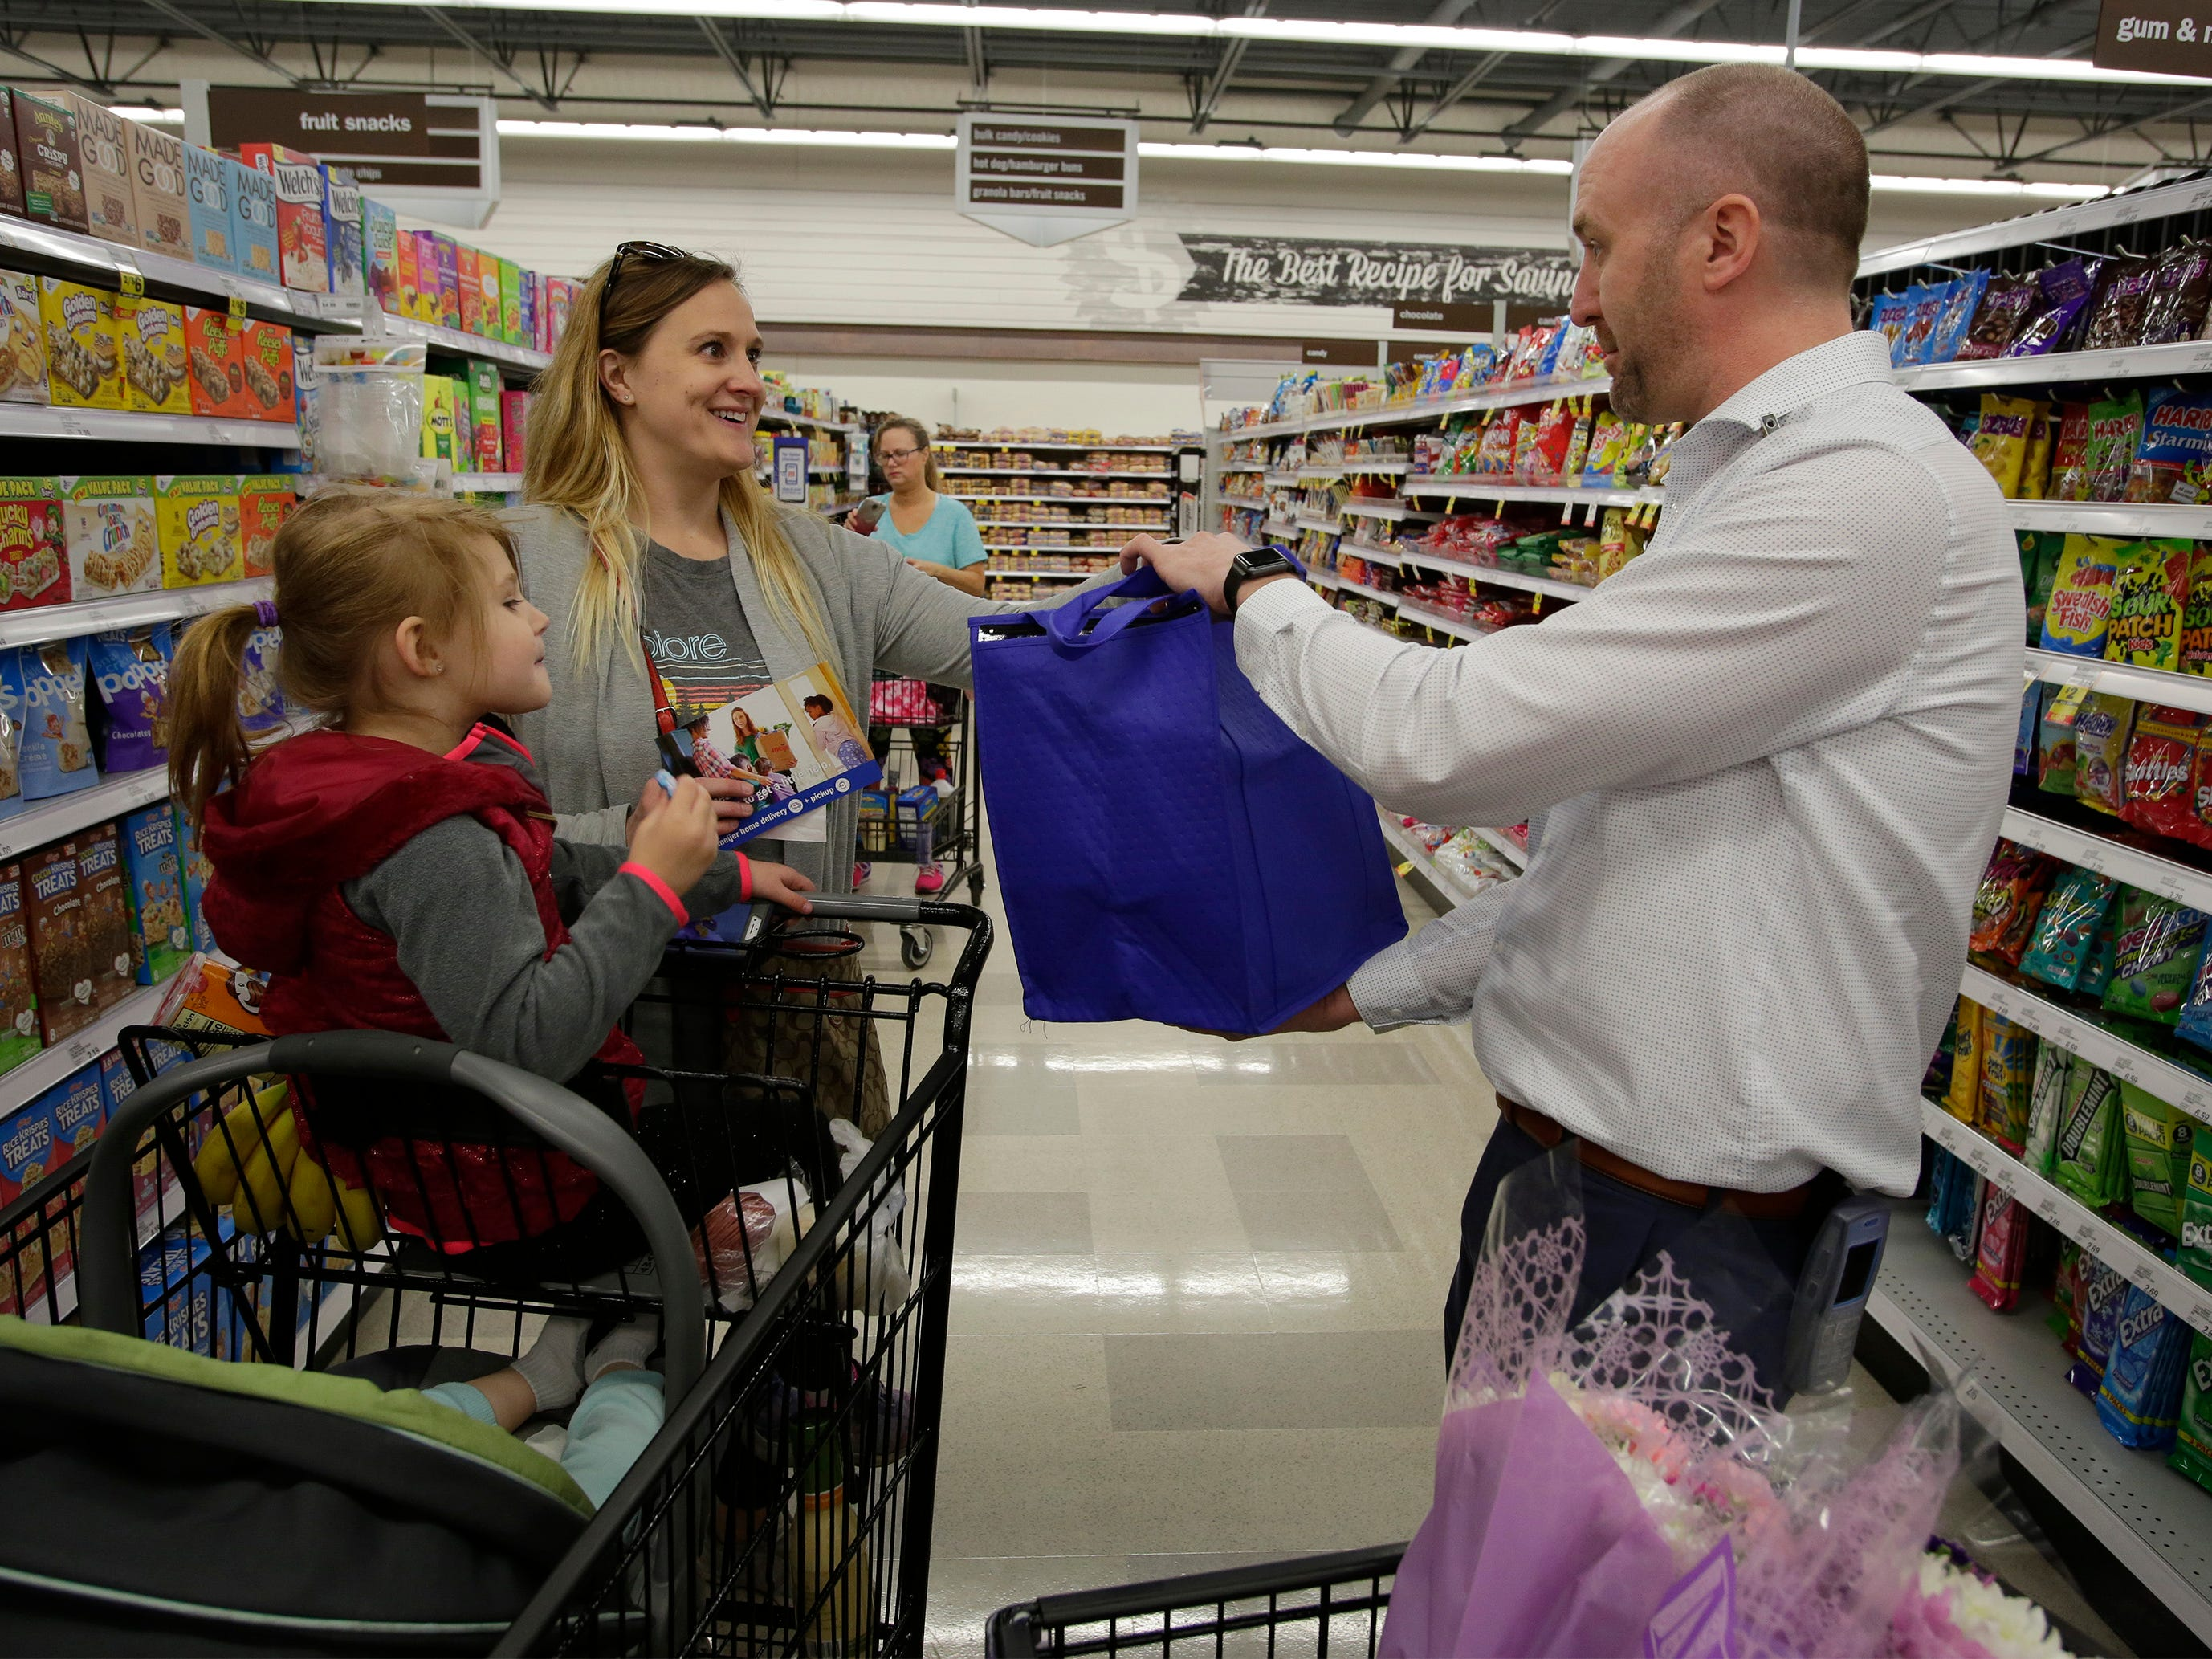 Shelly Nole of Sheboygan is all smiles as she is presented gifts by Meijer Store Director Jeff  Kietzman at Meijer, Saturday, May 11, 2019, in Sheboygan, Wis. The store randomly handed out gifts to moms Saturday. Noles had her children Hannah 3, and Amelia, 11 months with her.